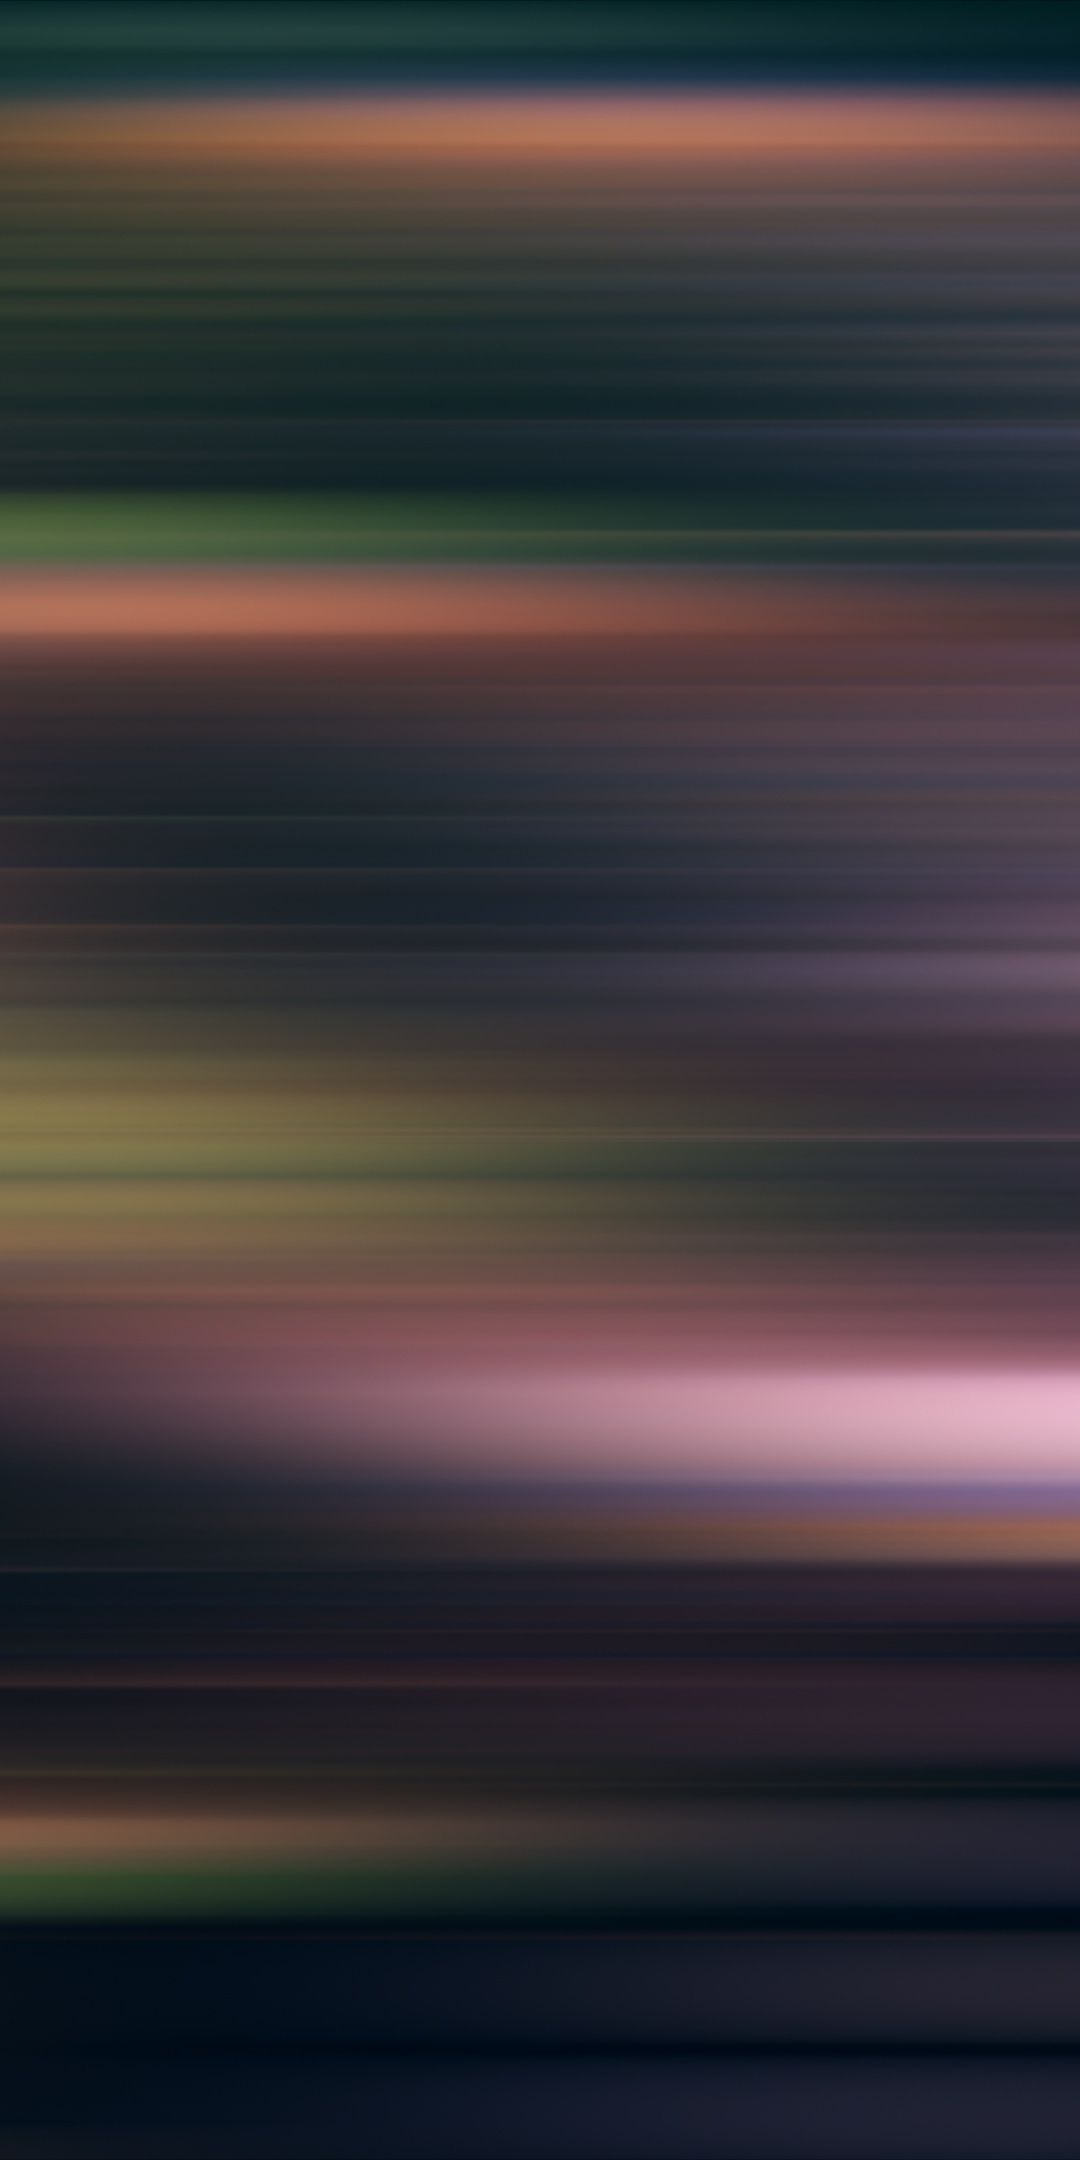 Blur Motion Blur Abstract 1080x2160 Wallpaper Iphone Wallpaper Blur Abstract Iphone Wallpaper Phone Wallpaper Images